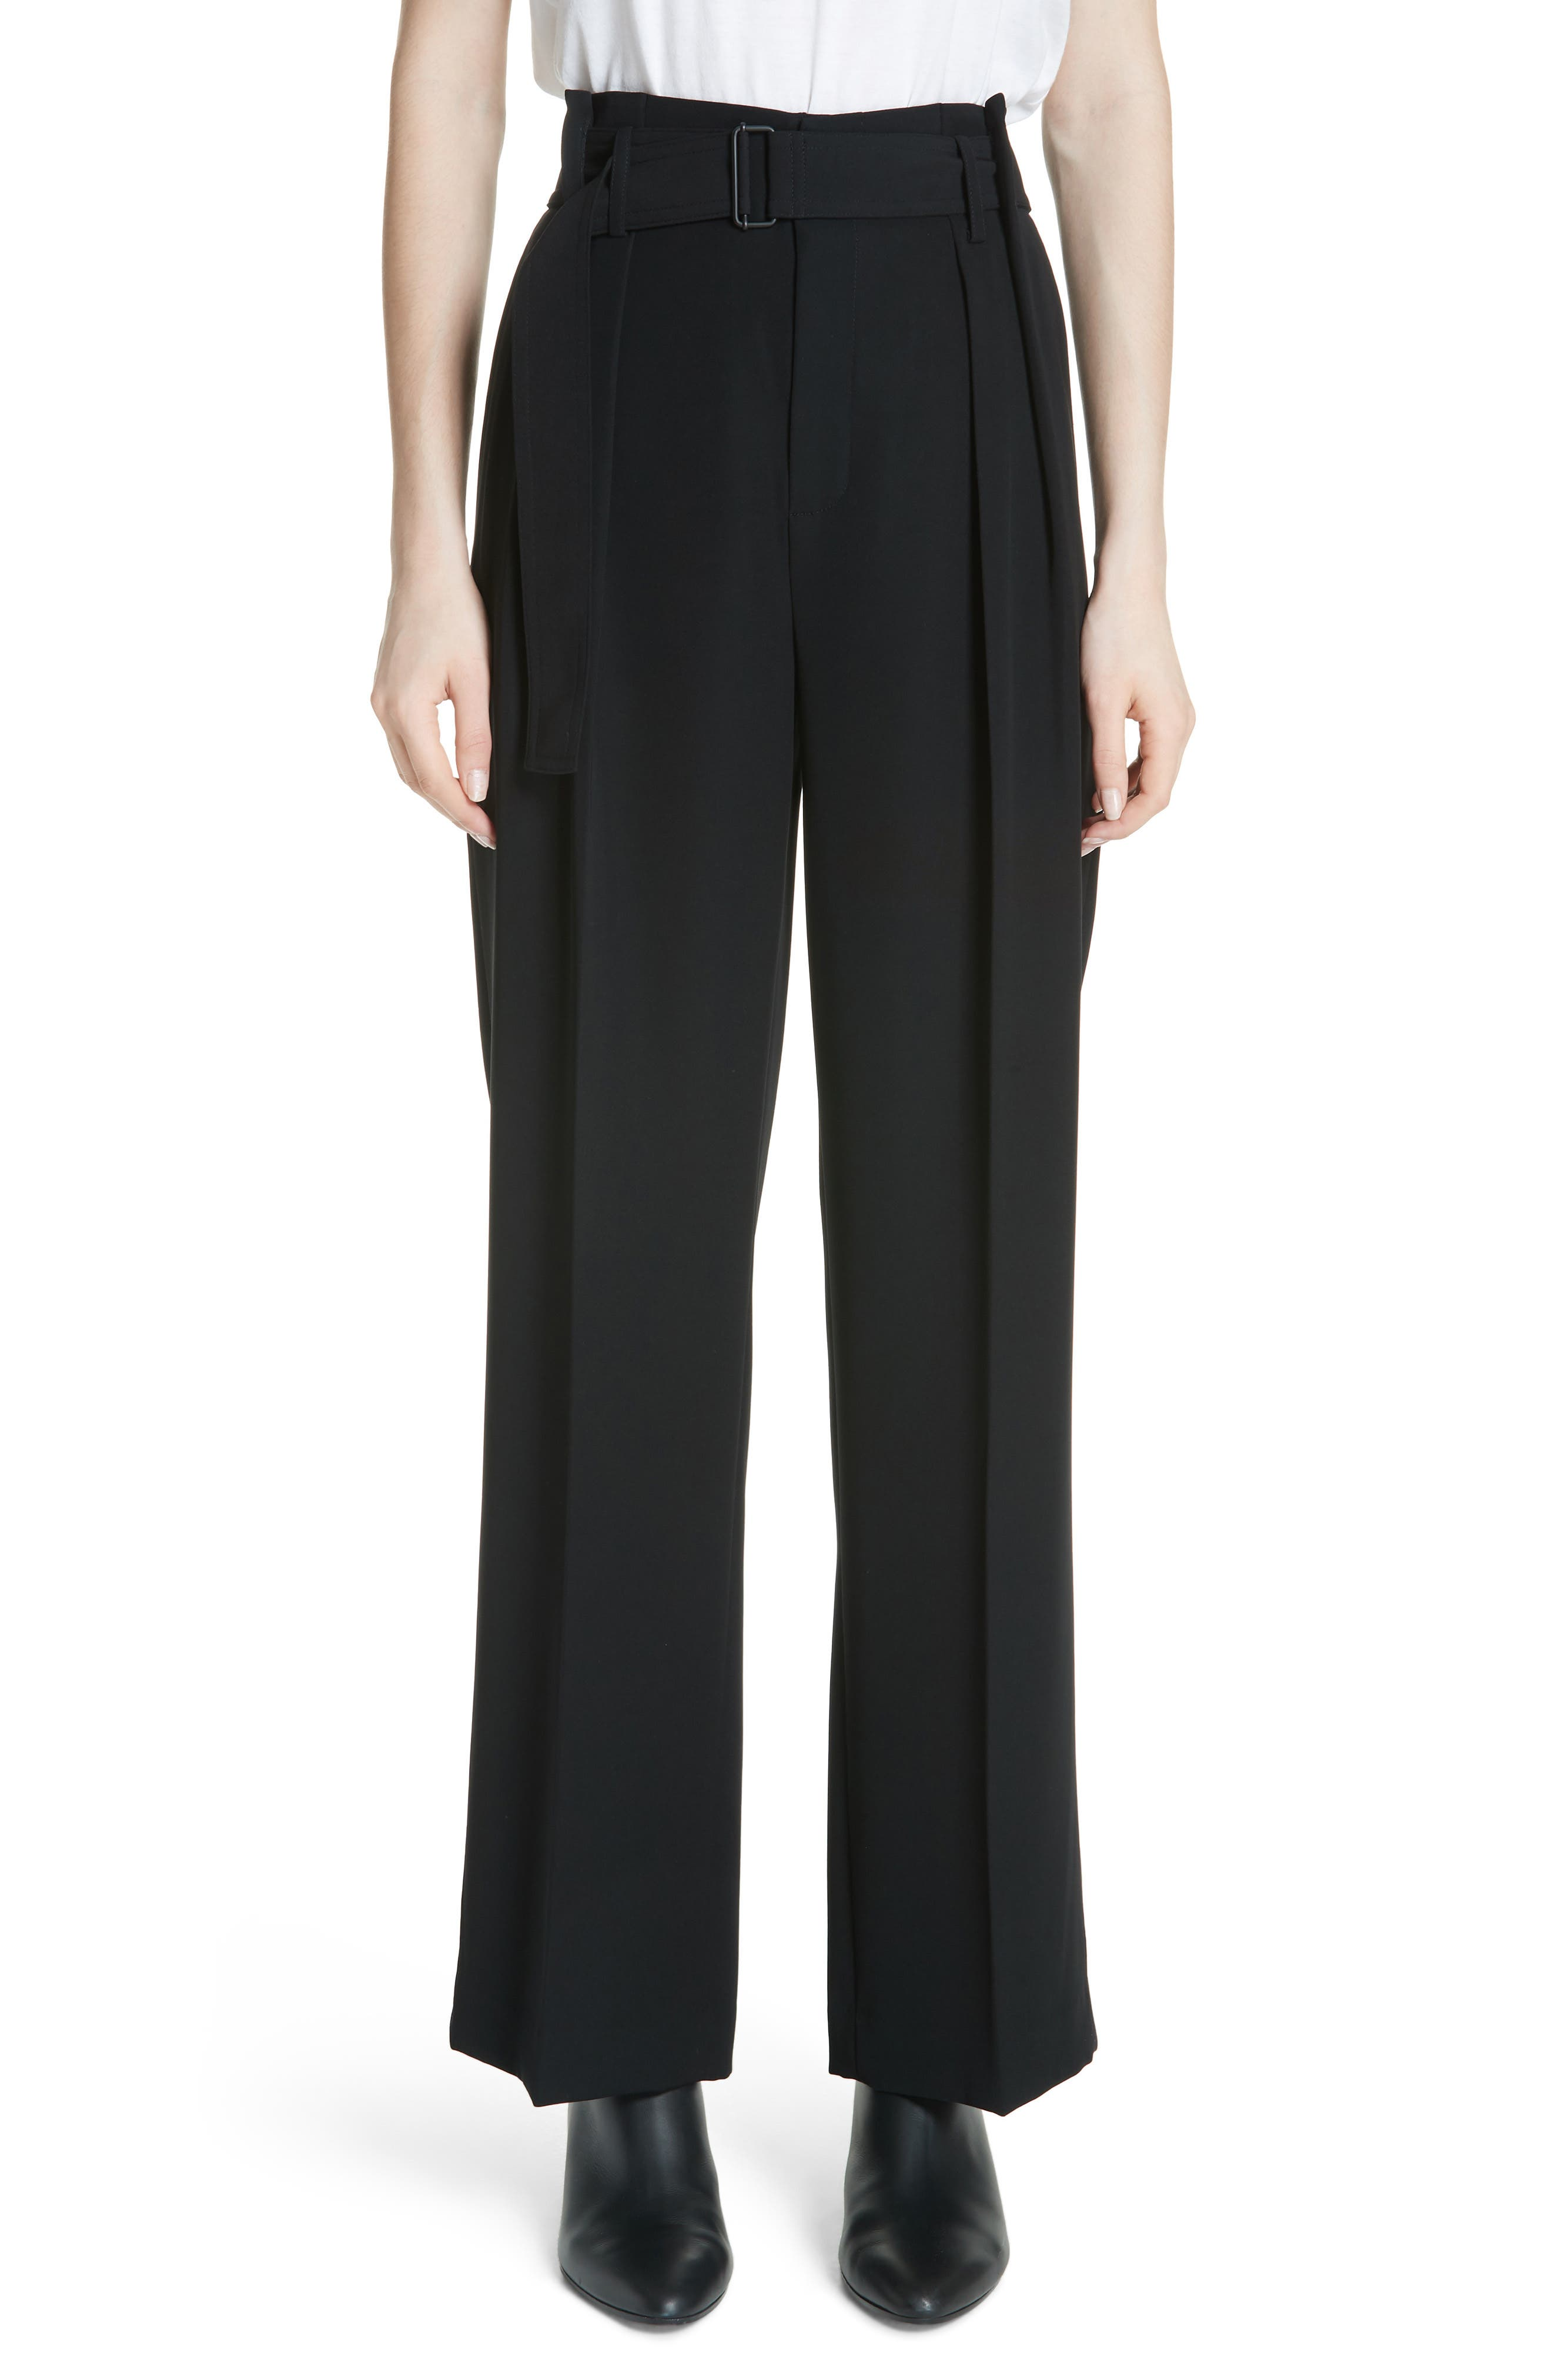 VINCE,                             Belted Wide Leg Pants,                             Main thumbnail 1, color,                             BLACK